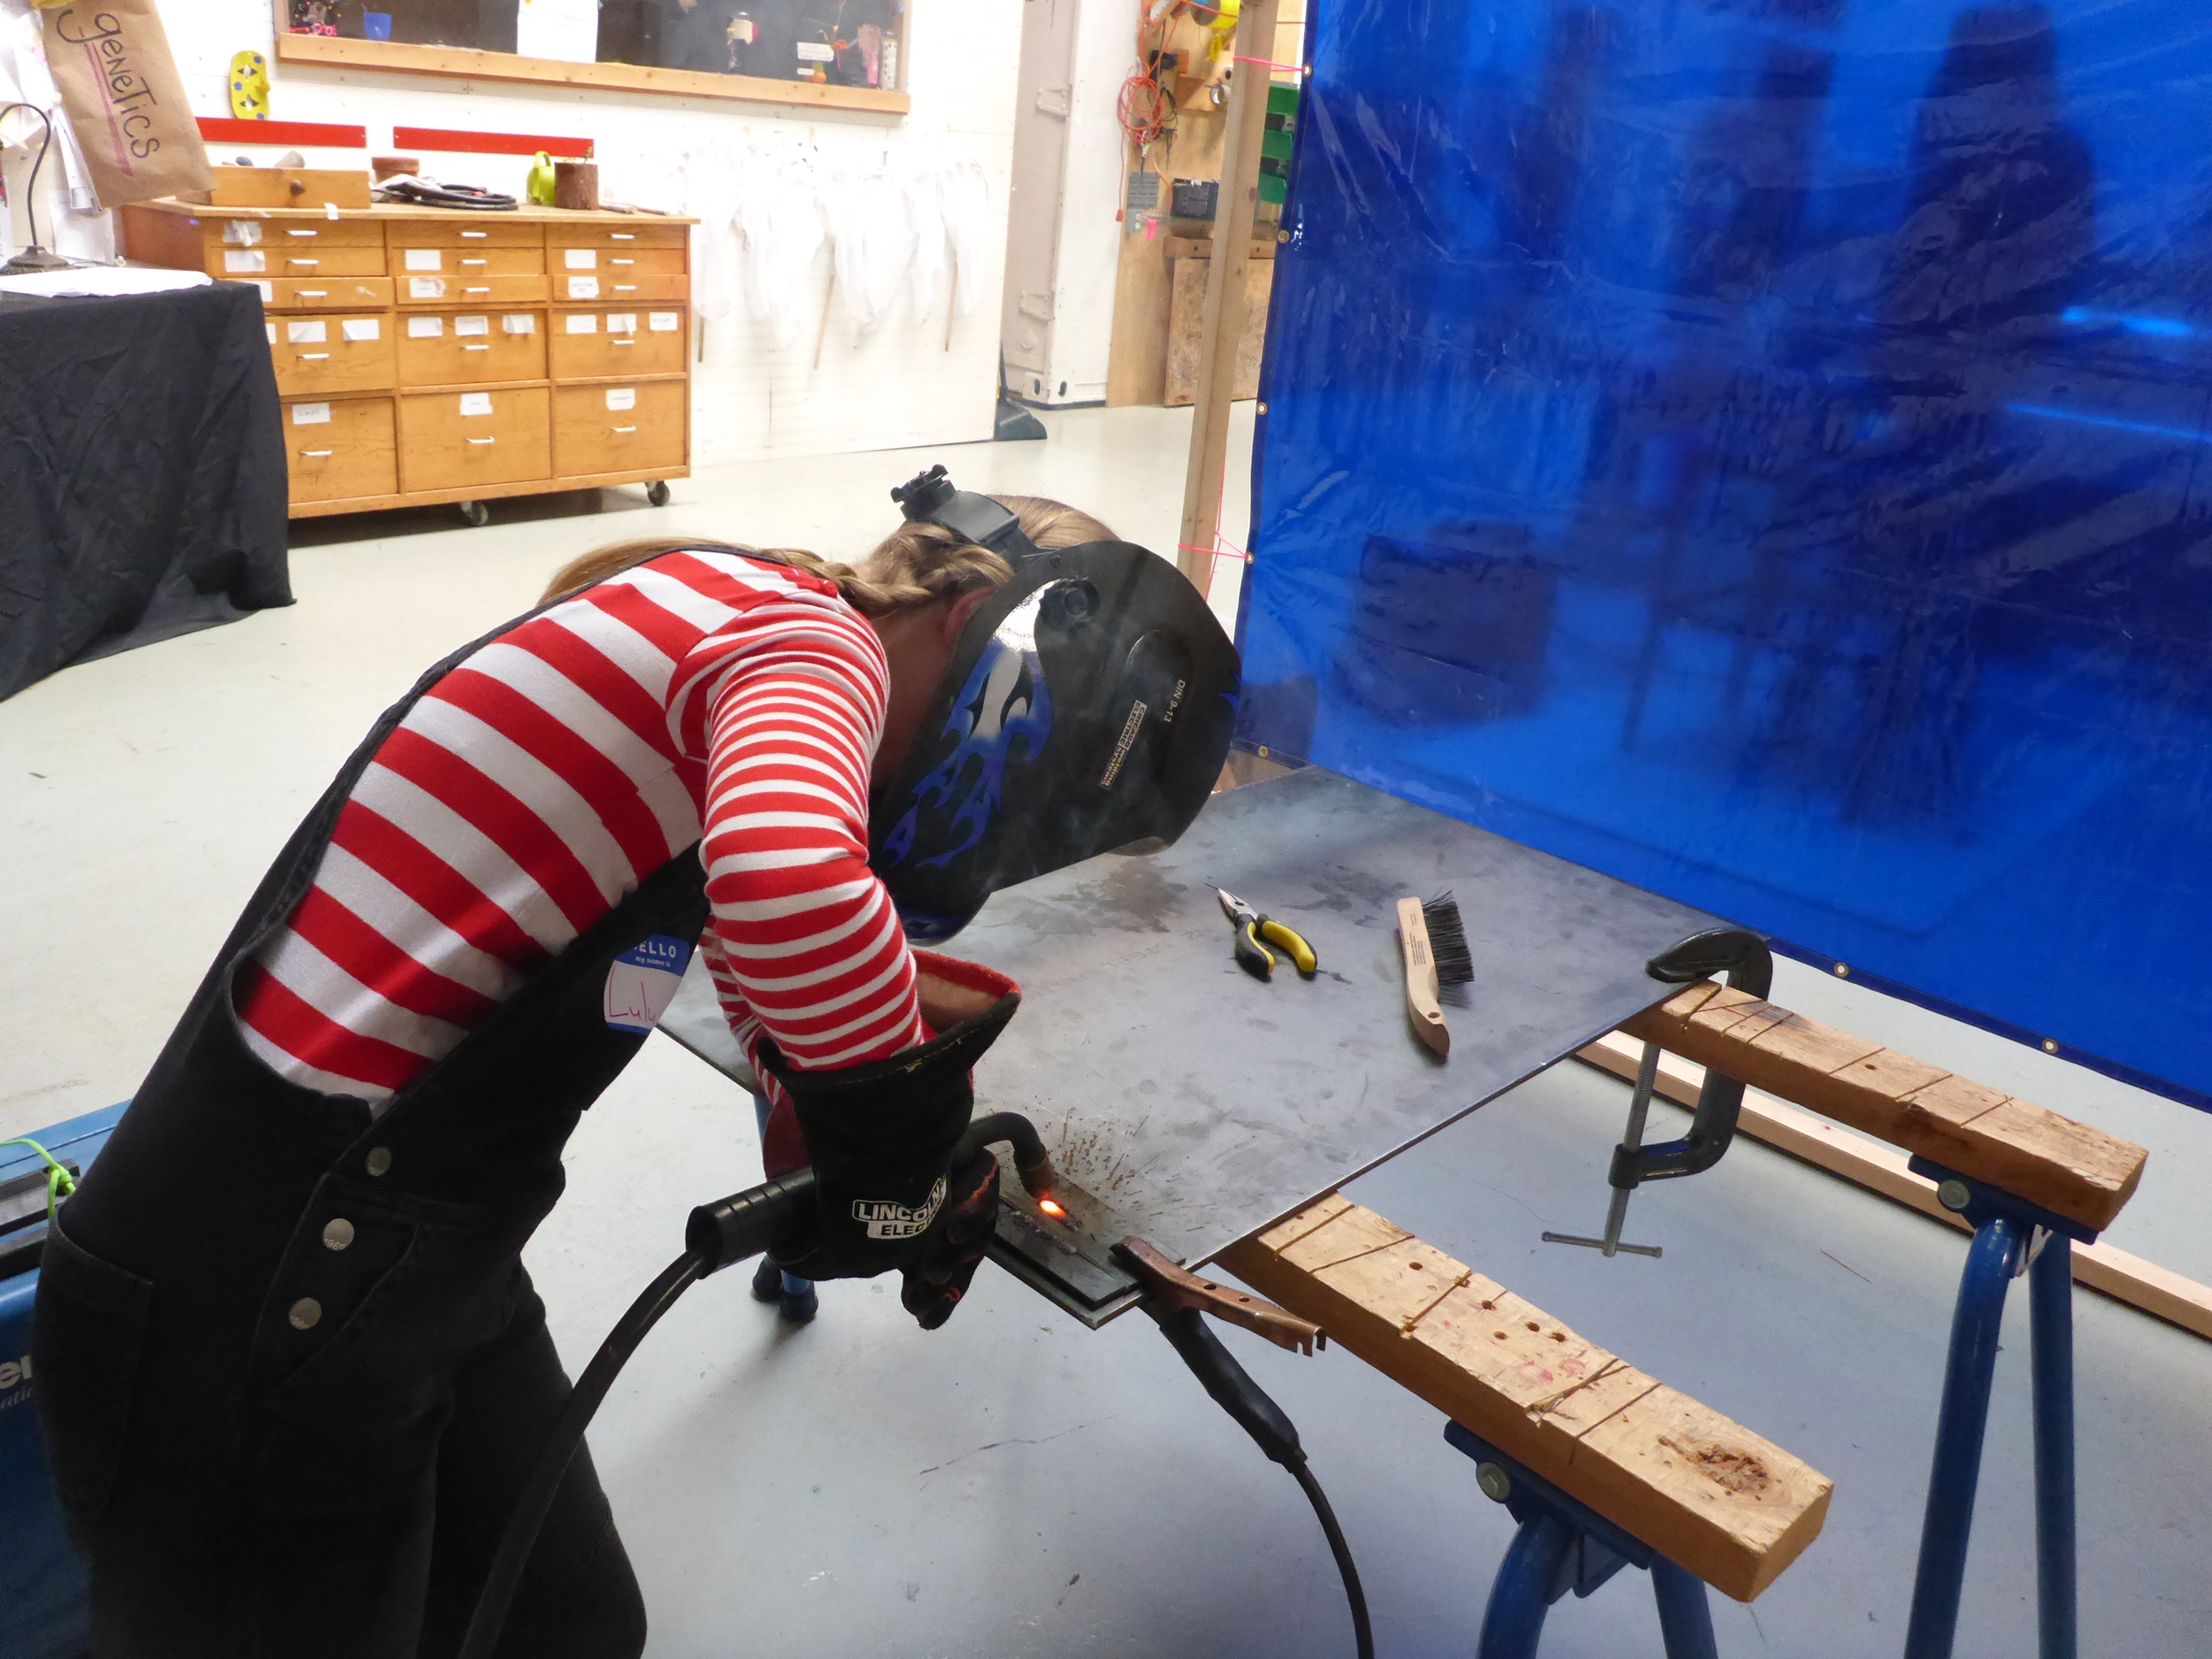 Lulu carefully stabilizes her body with one elbow resting on the welding table so that she can make a longer weld.